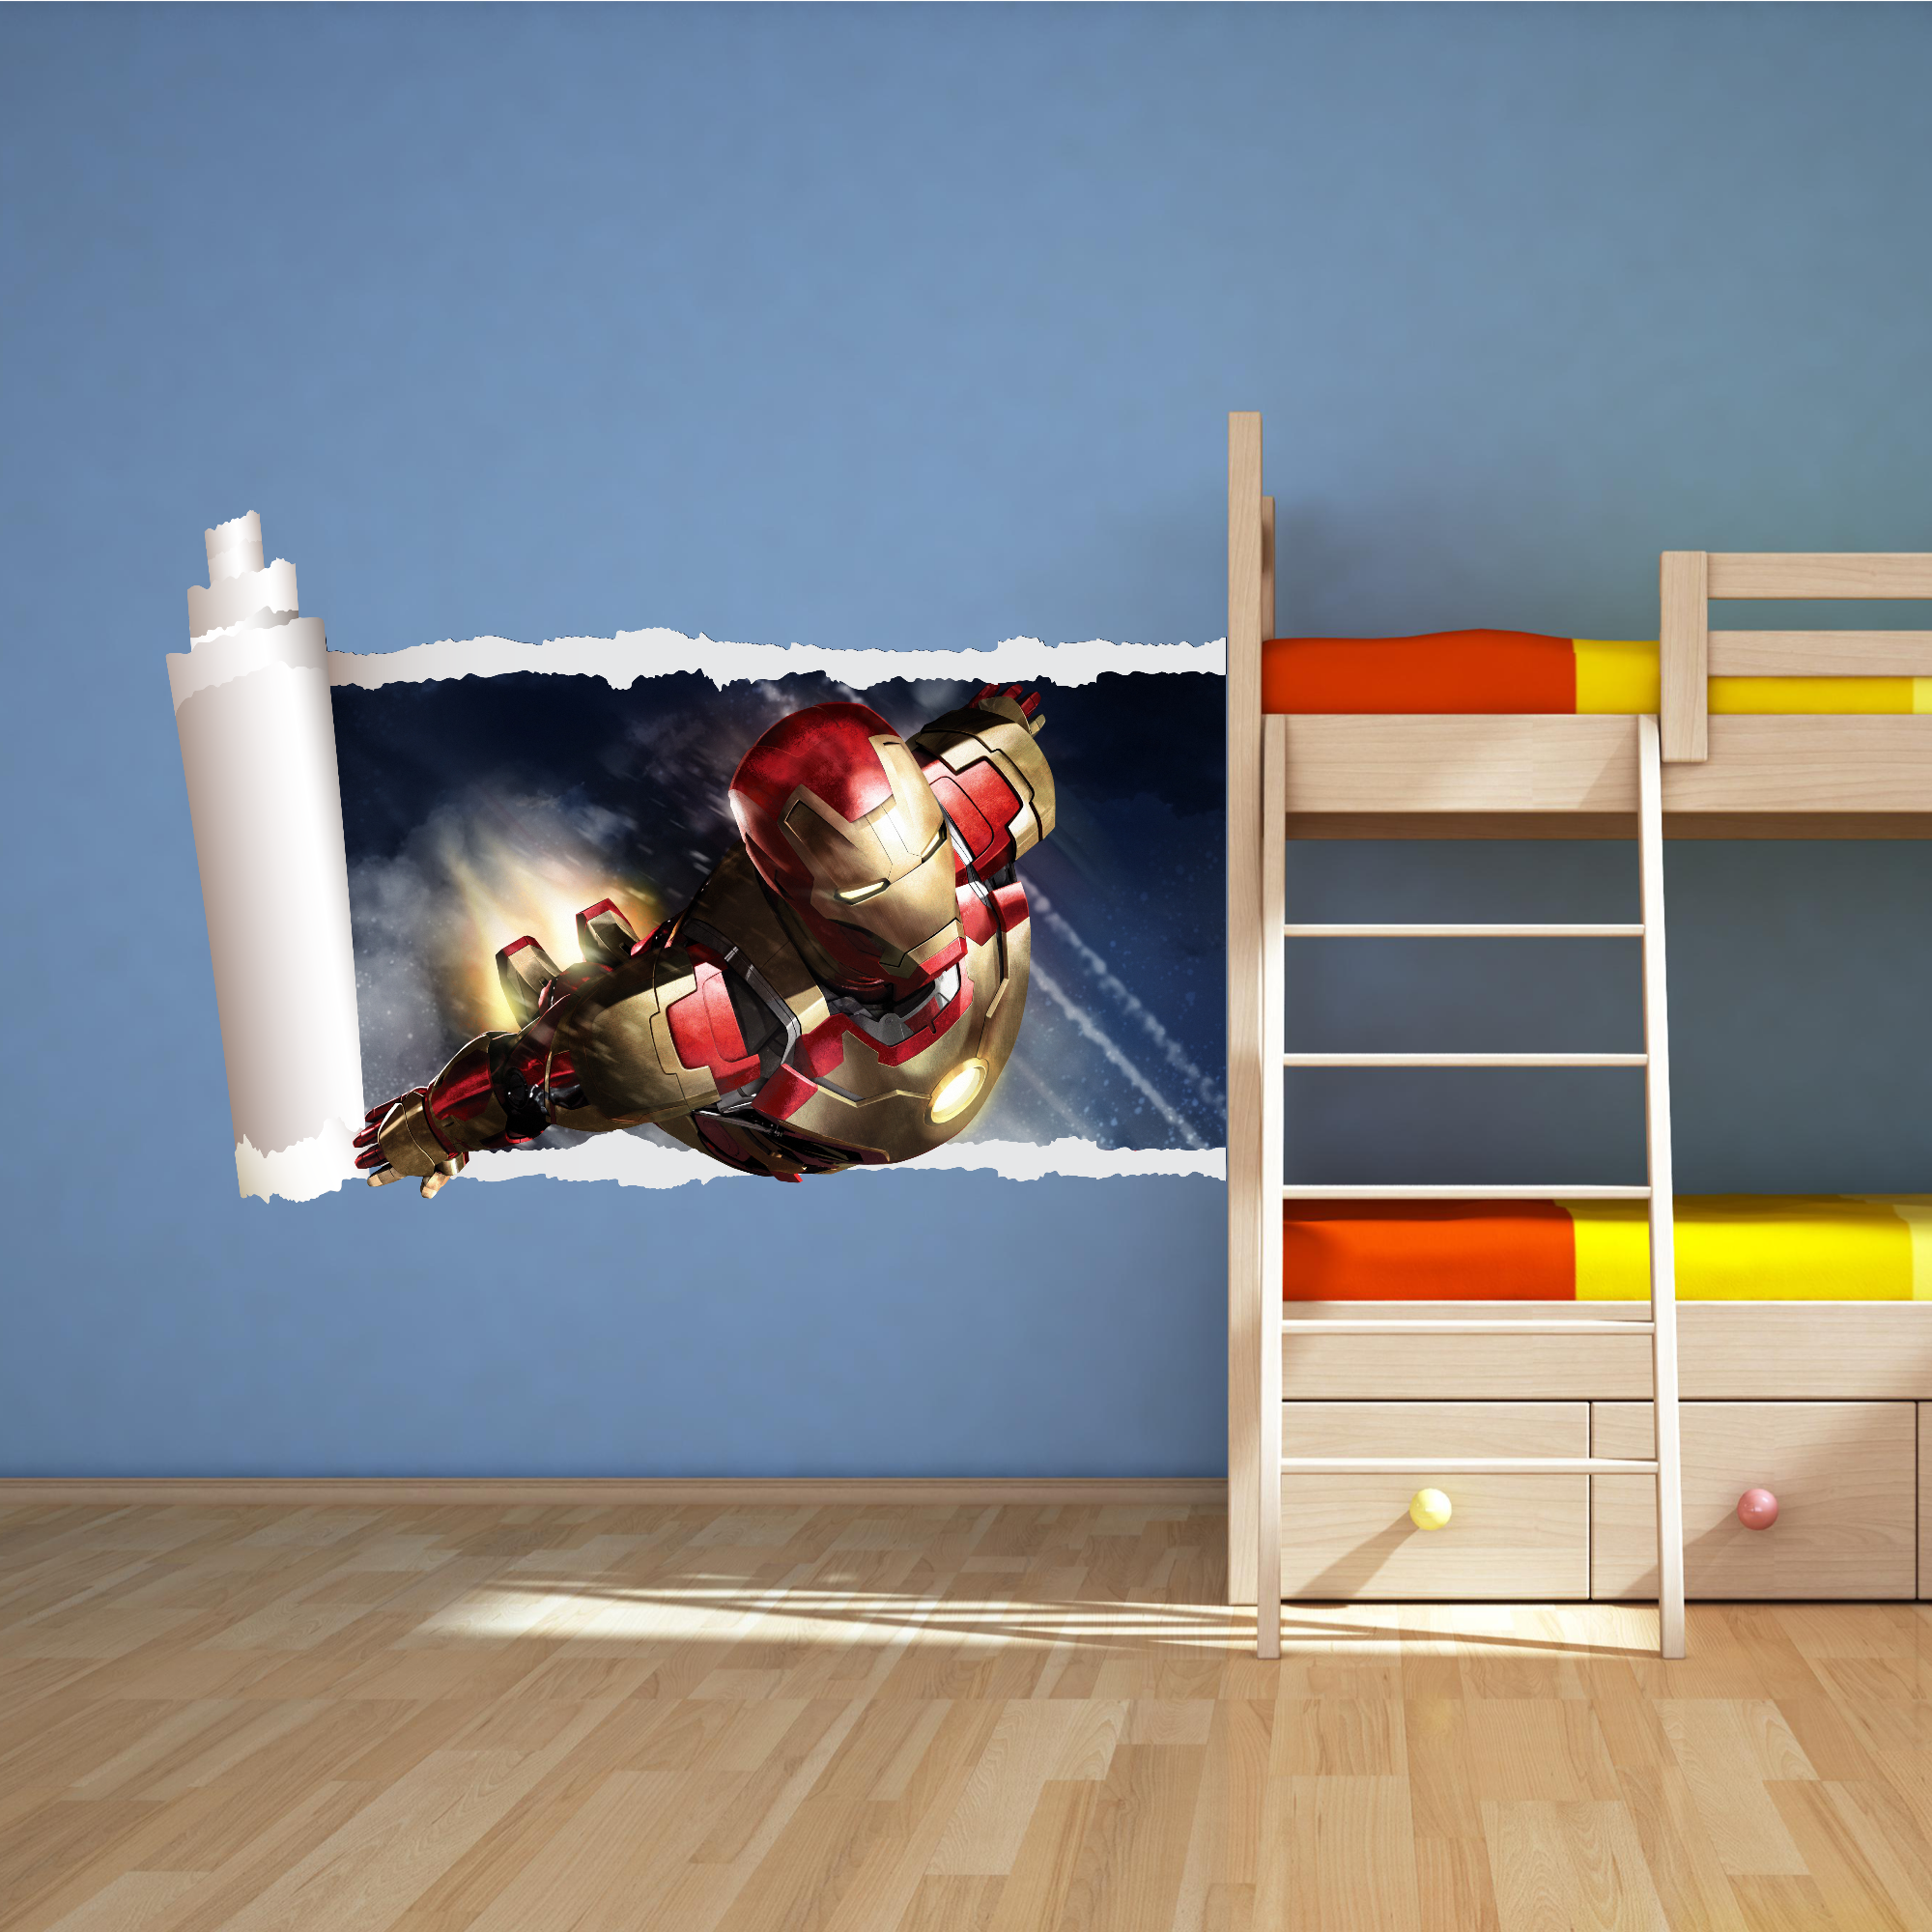 accessories marvel argos best lampshade decals life super bedroom decor our stickers car room curtains party themed makeover vintage set light fullsizerender ideas furniture walmart wall as avengers family superhero hero little shade